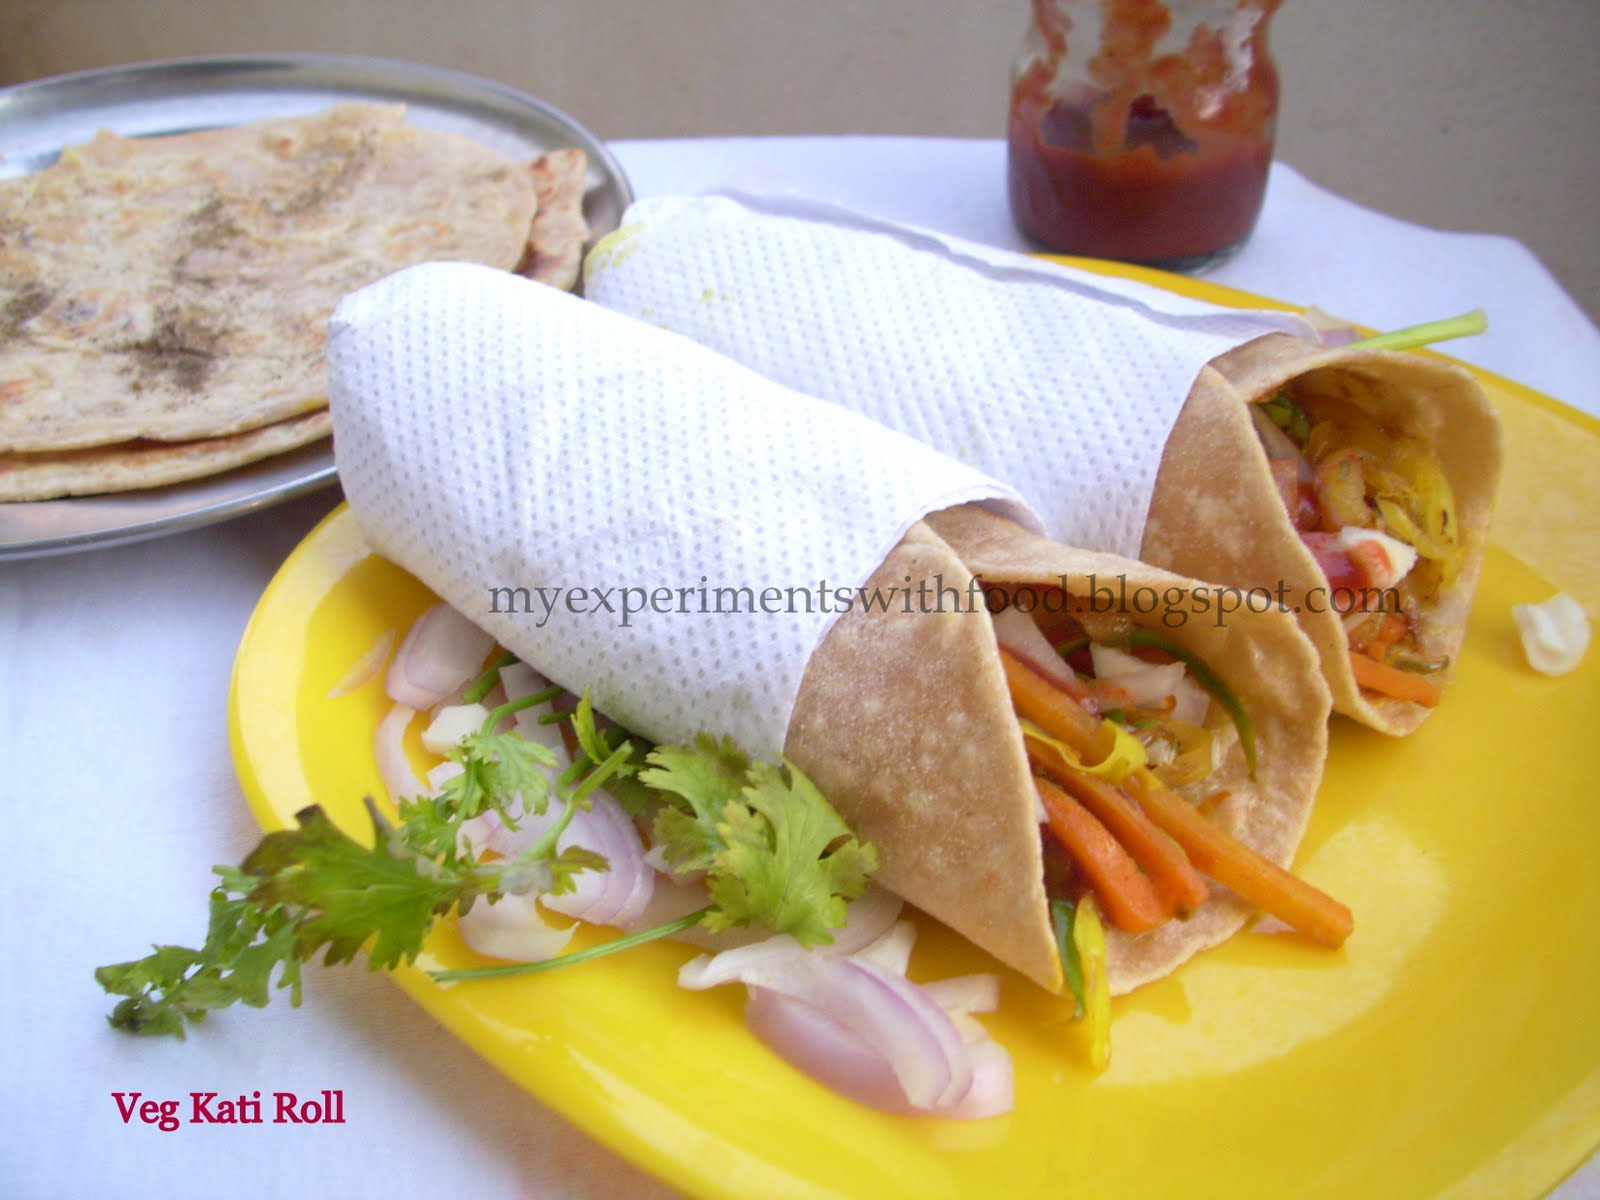 My experiments with food vegetable kathi roll it is said that kati is known as stick and the roti or flat bread is stuffed with tasty stuffings and rolled in the shape of a cigar that makes it easy forumfinder Image collections